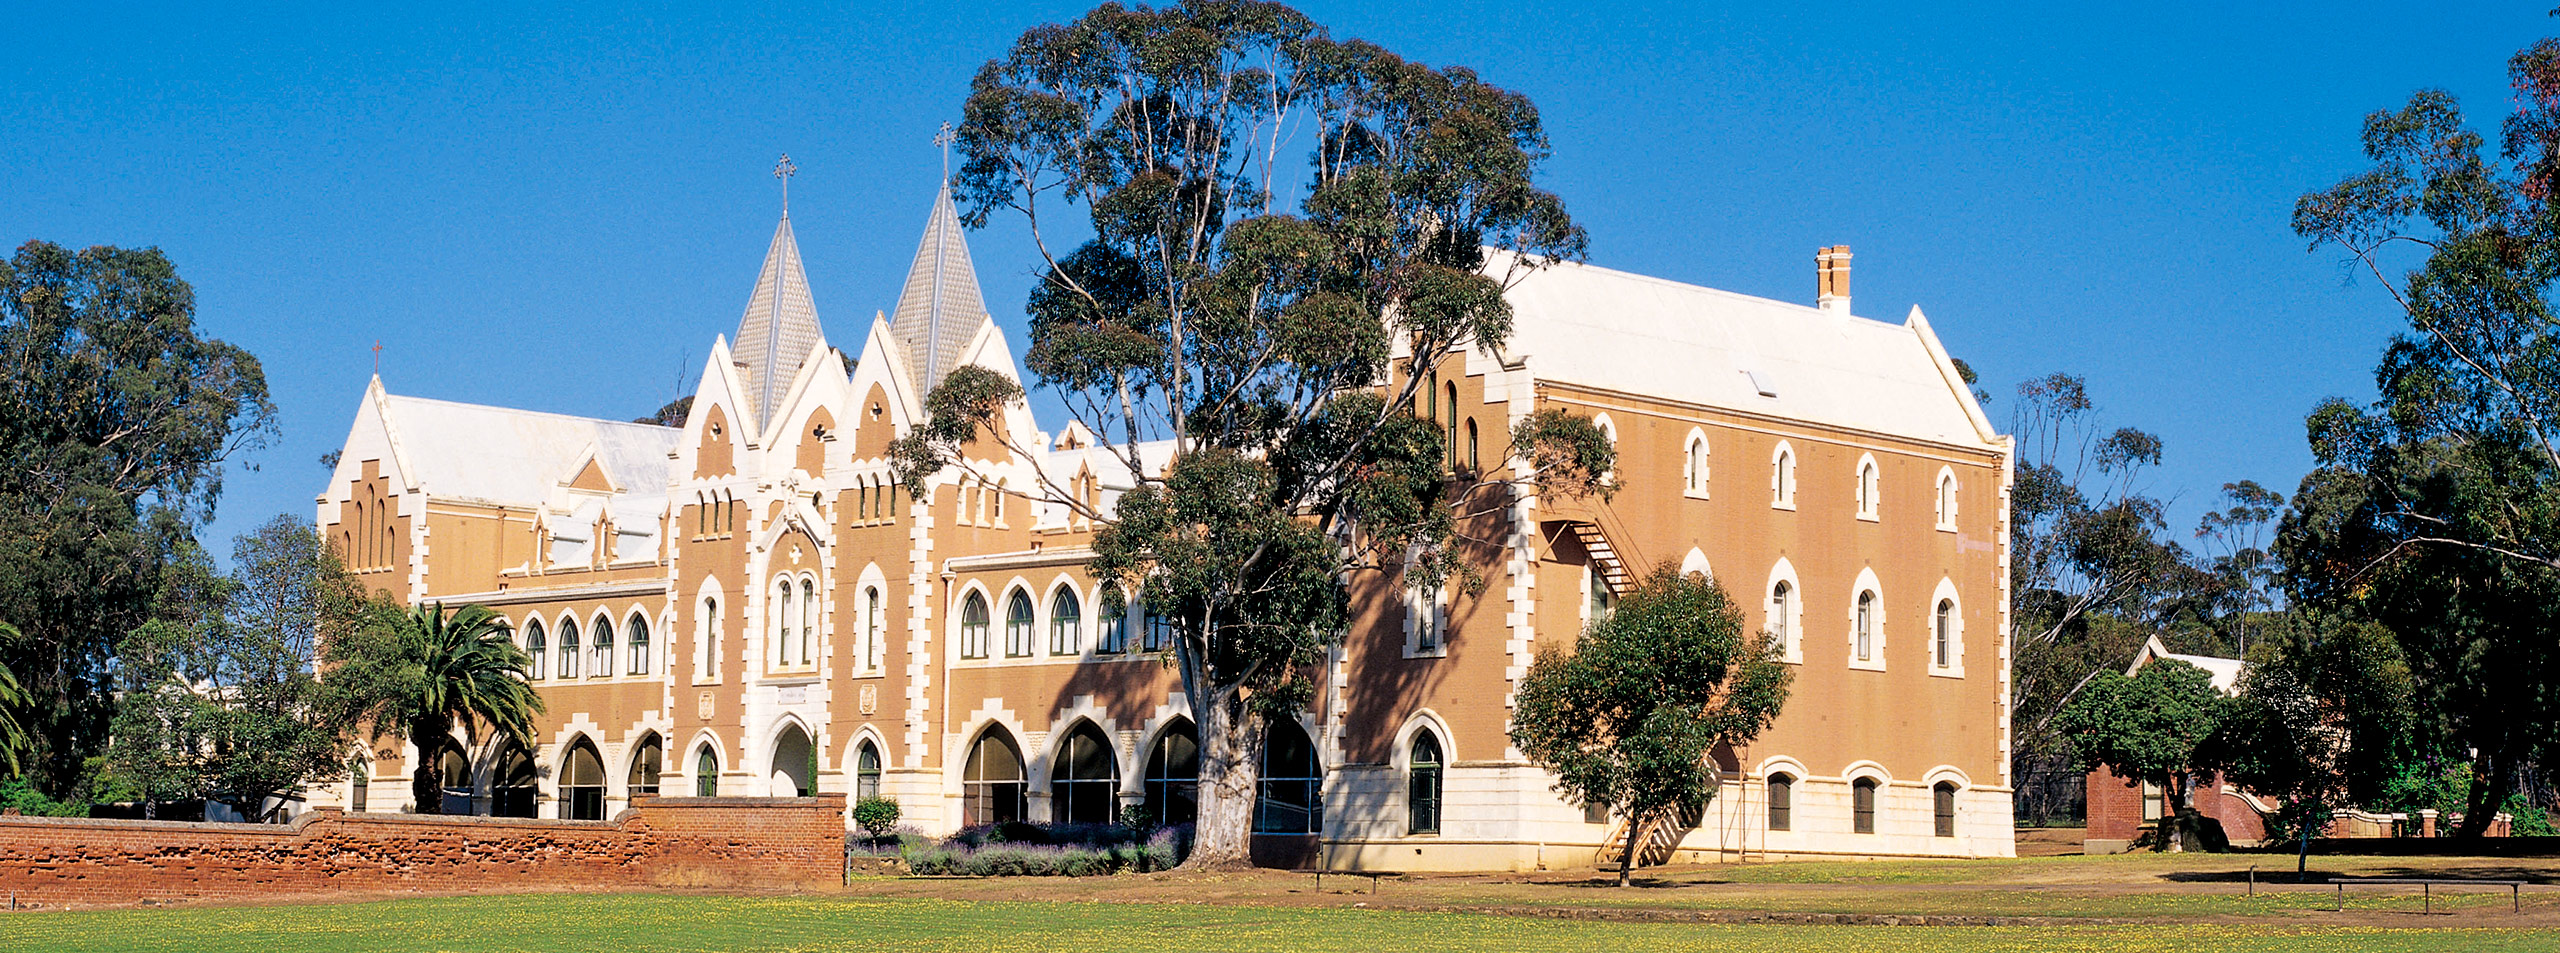 St Gertrude College